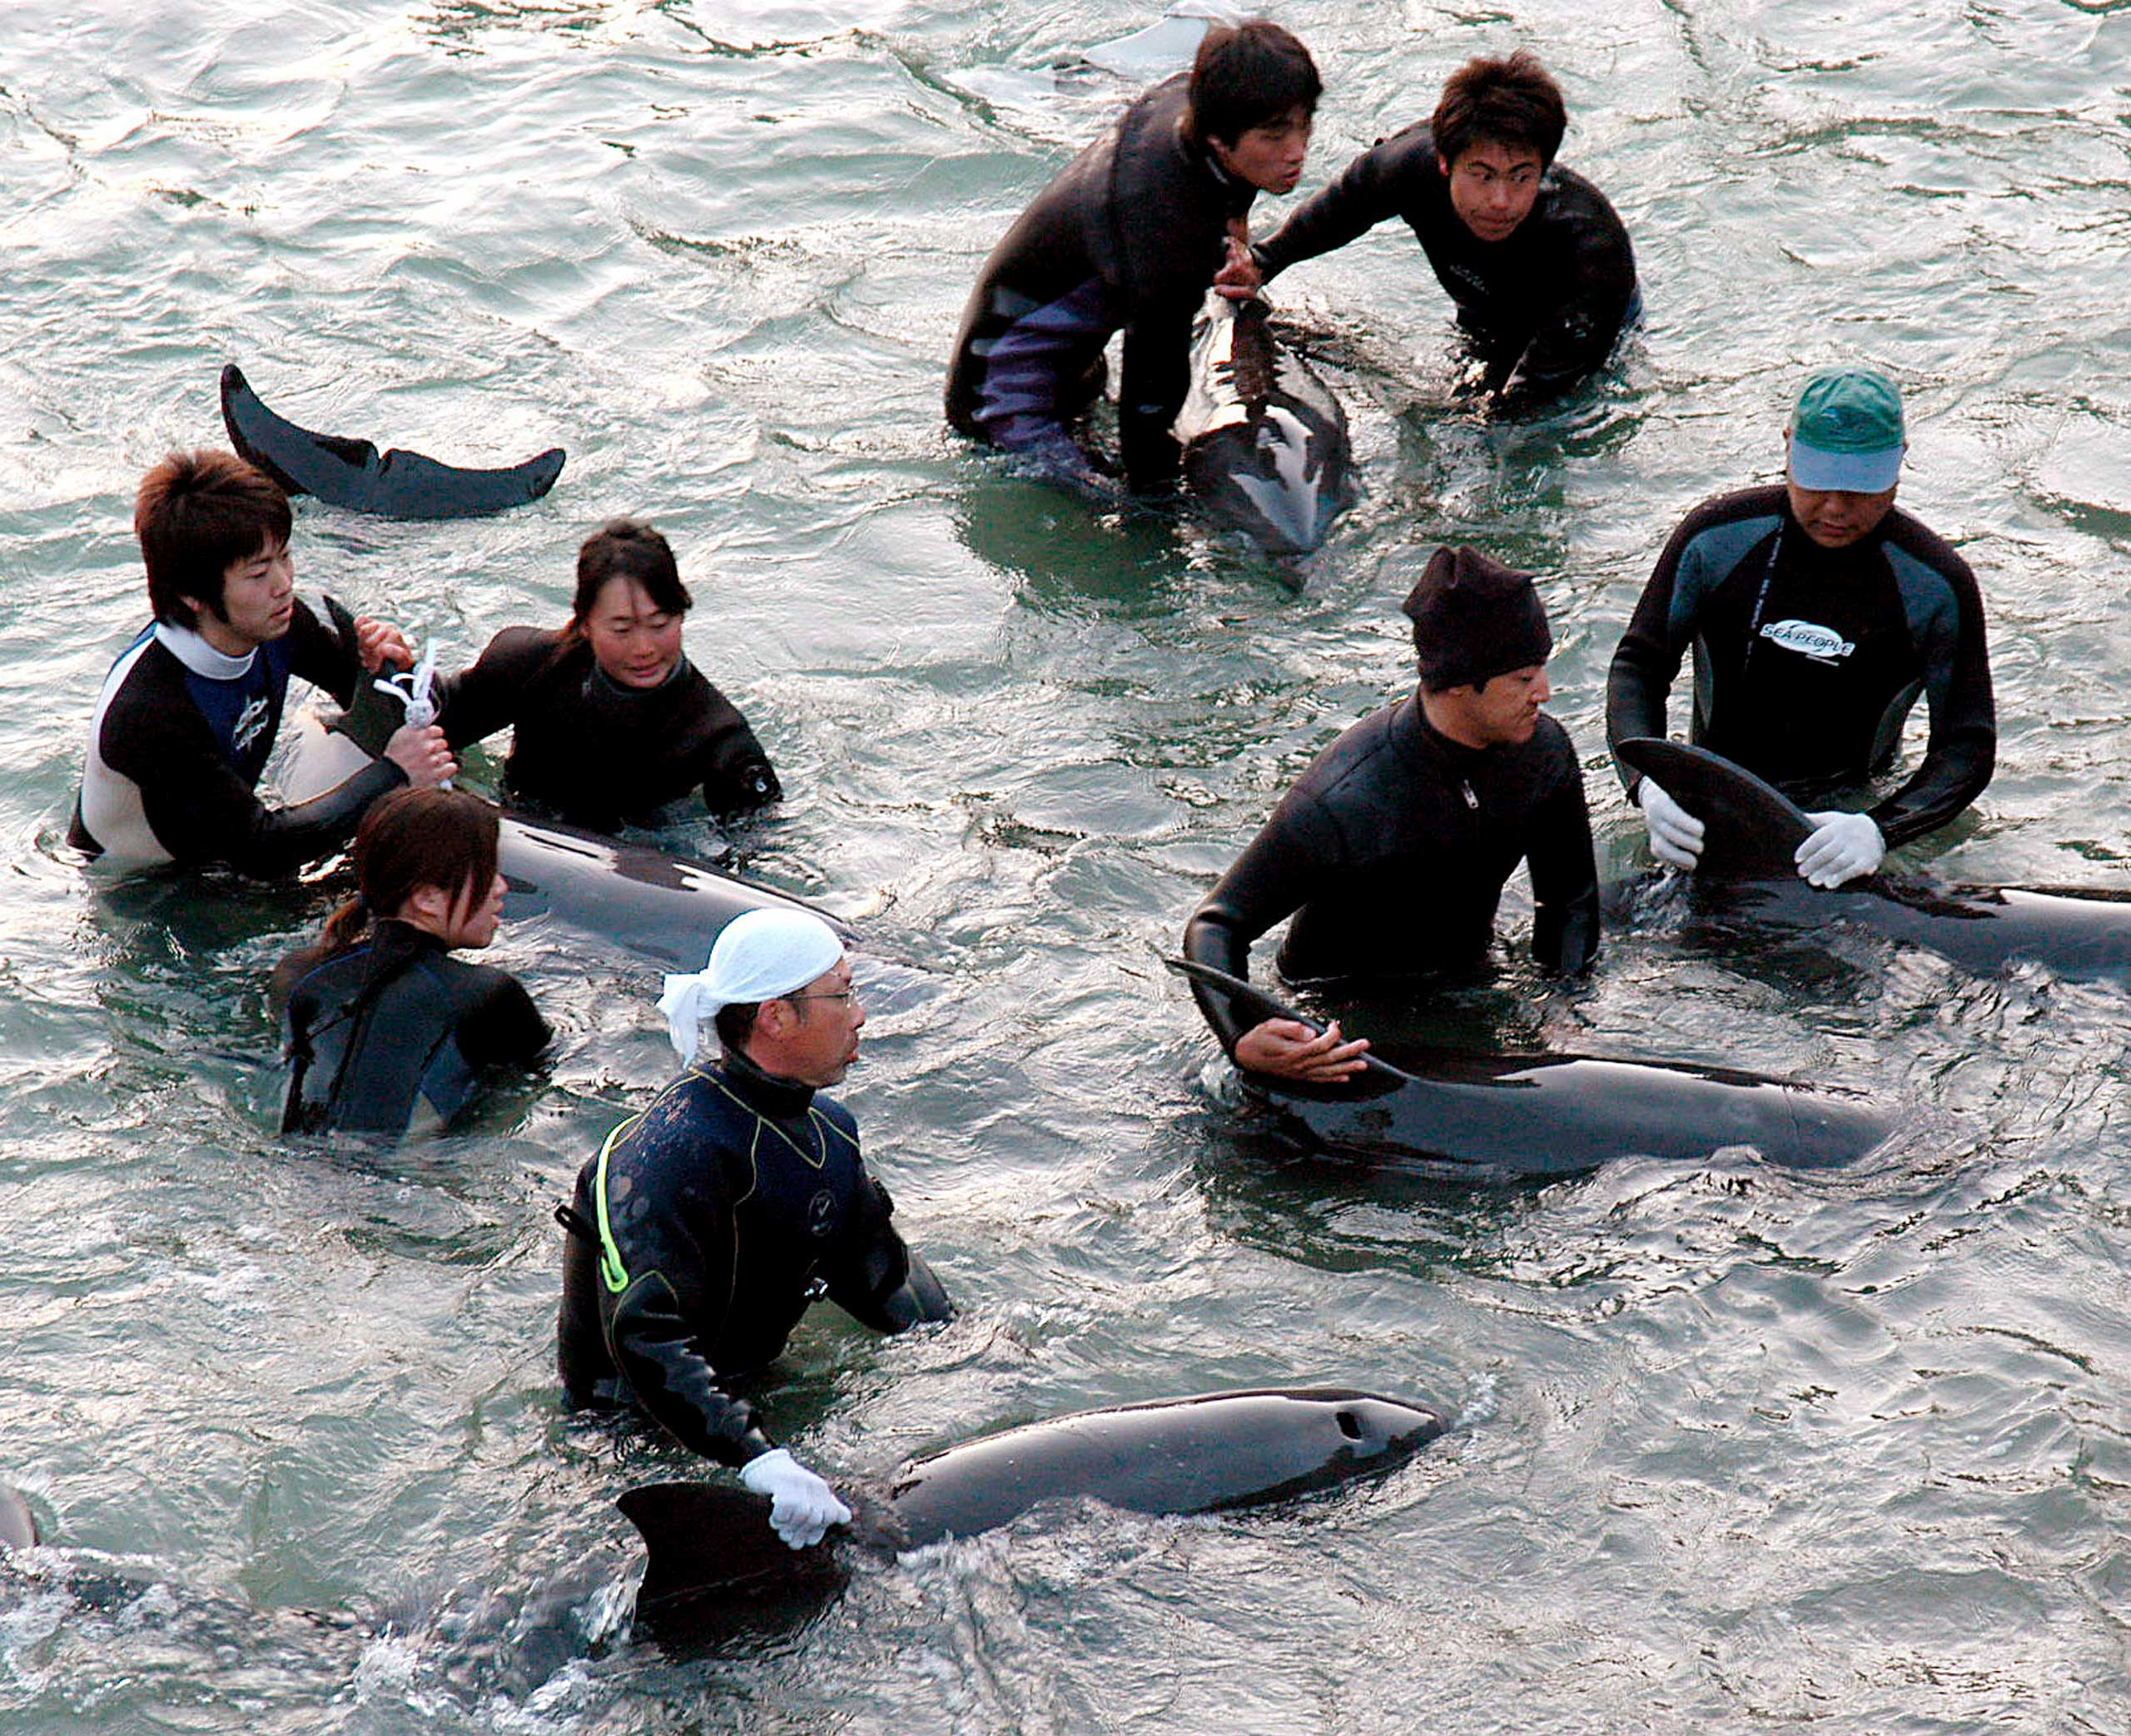 Fishermen trapping a group of dolphins in a holding cove following a large capture of dolphins in Taiji, Japan in 2007.